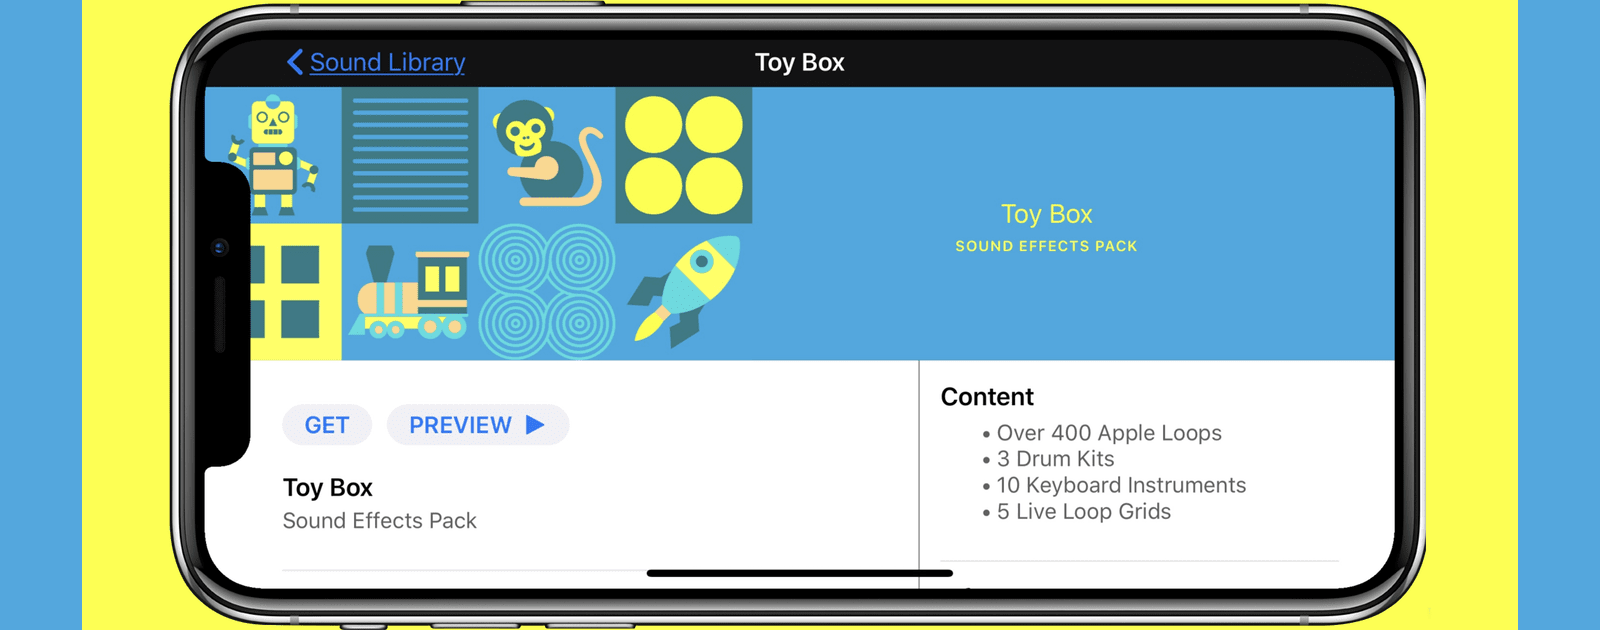 iOS: How to Download the New Toy Box Sound Pack in